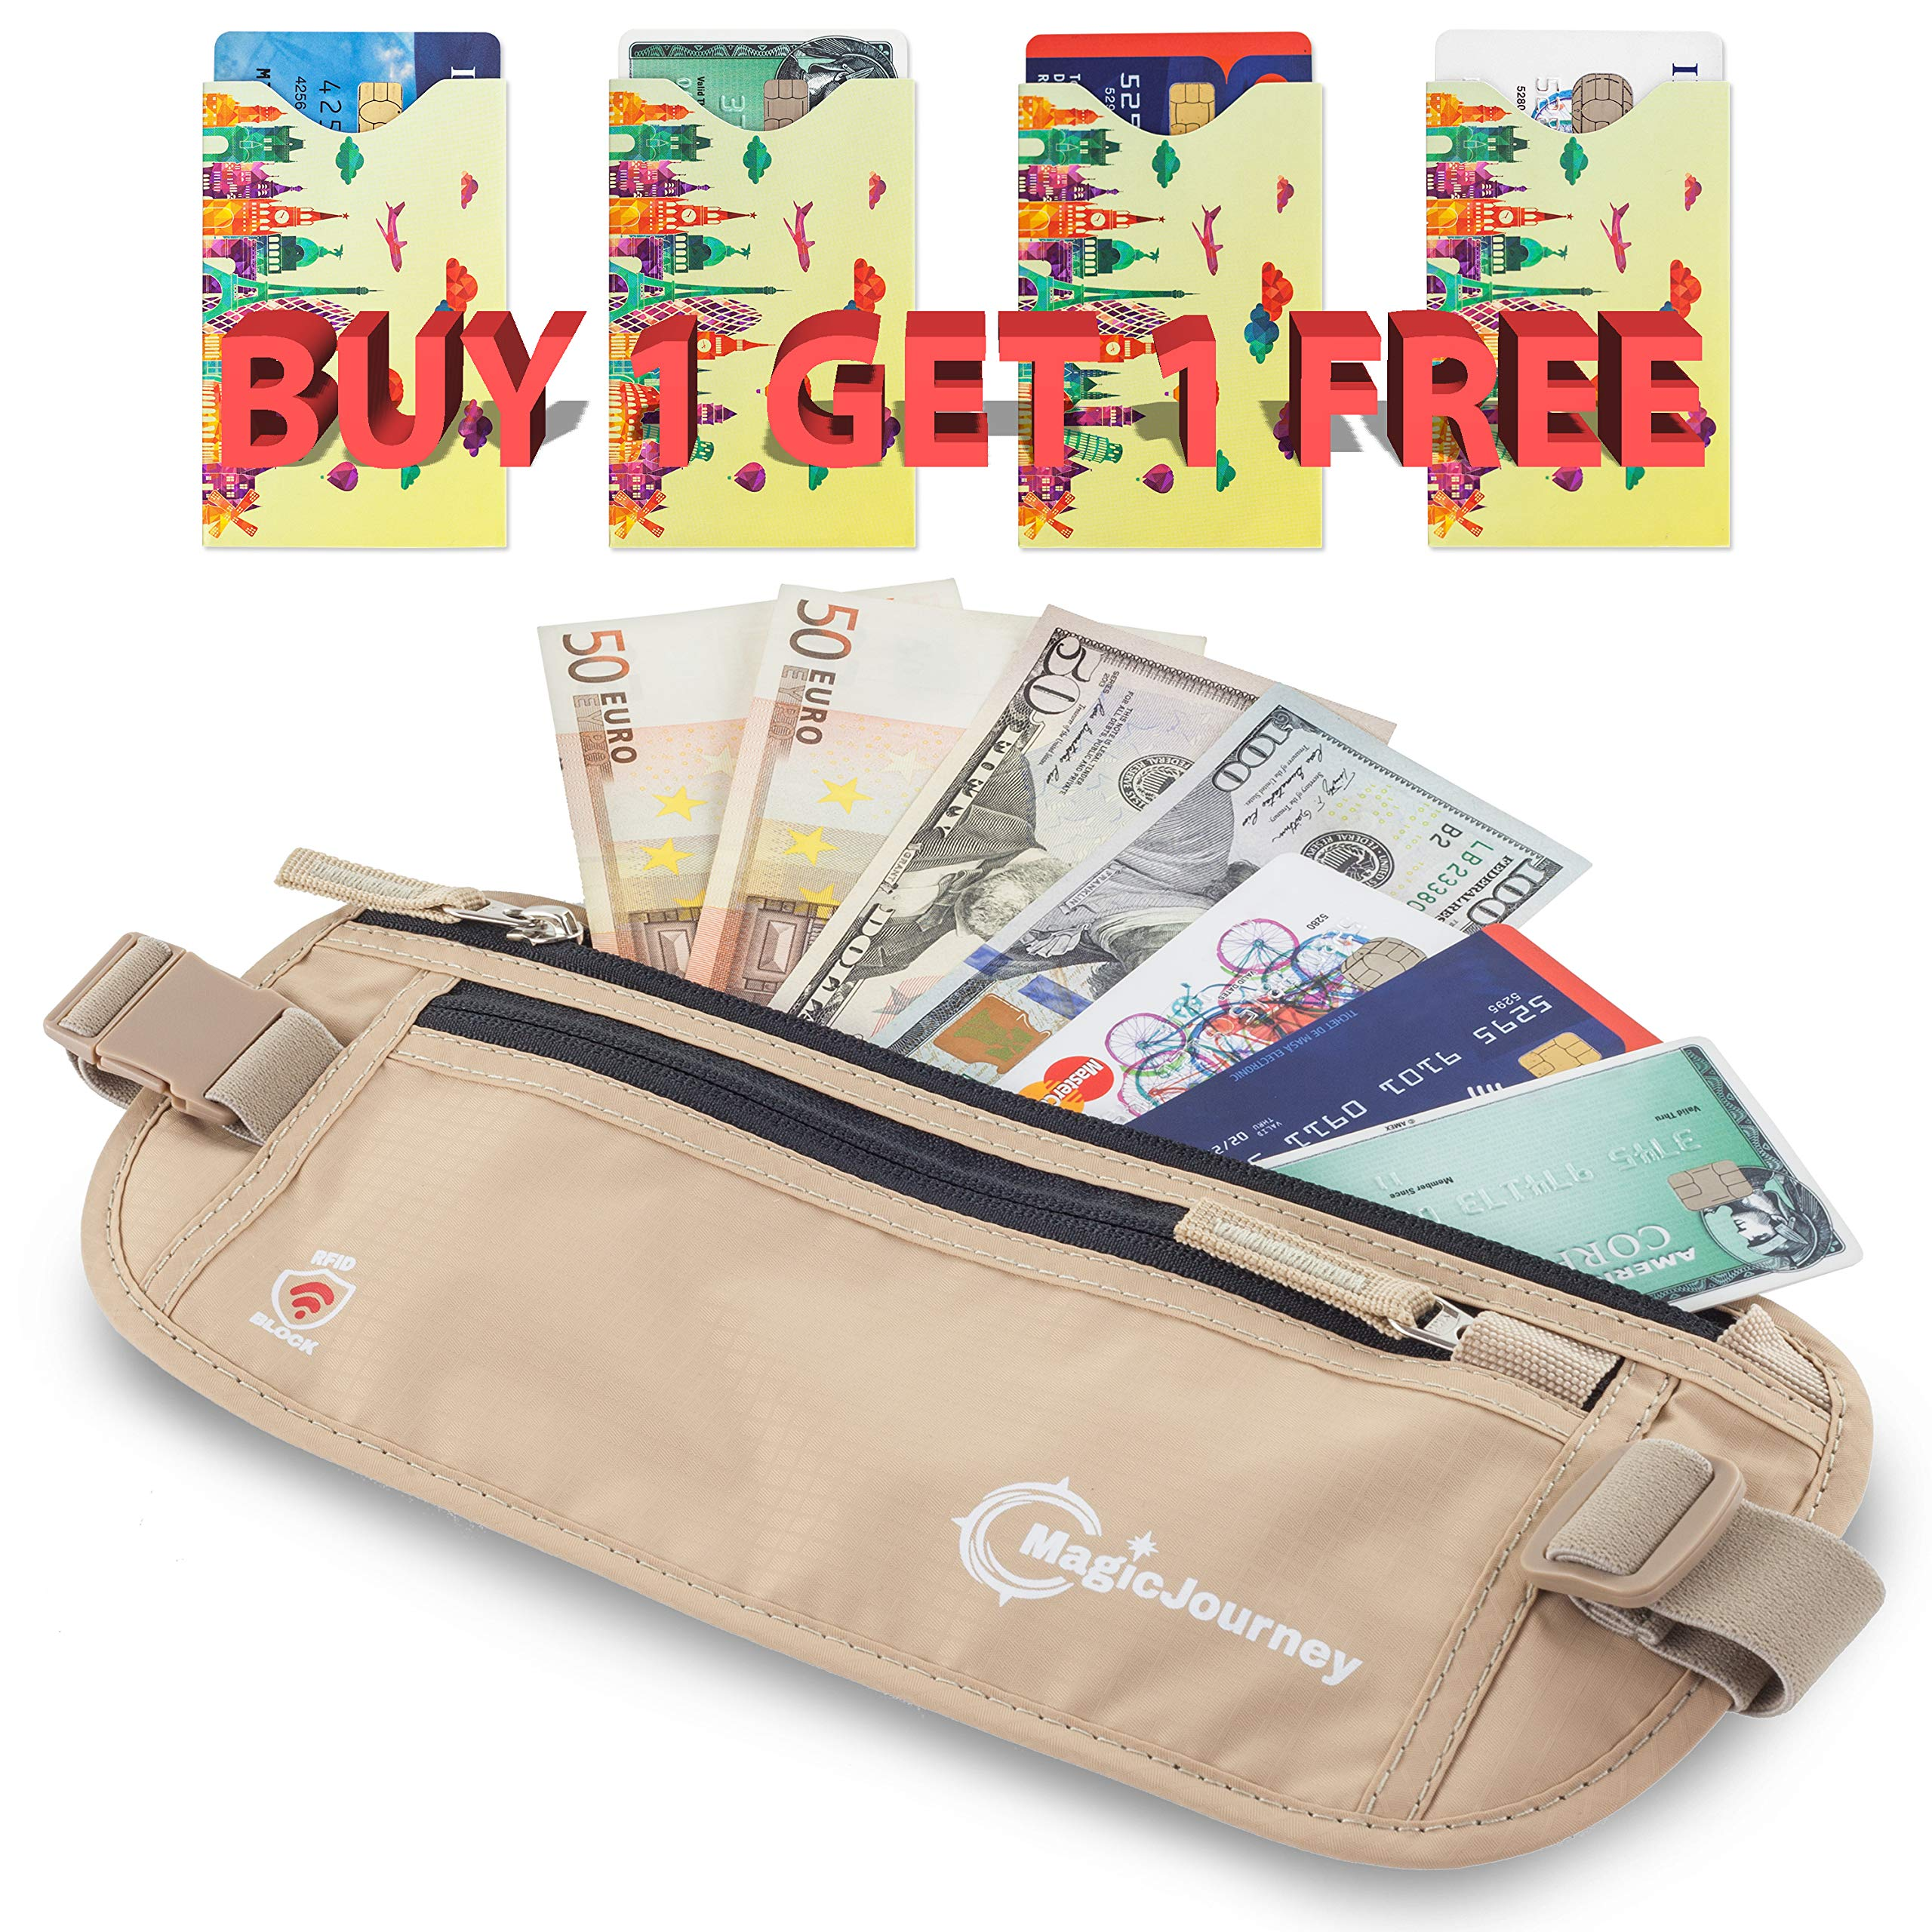 MagicJourney Travel Money Belt with 4 RFID Protection Card Sleeves – Money Belts for Travel Women